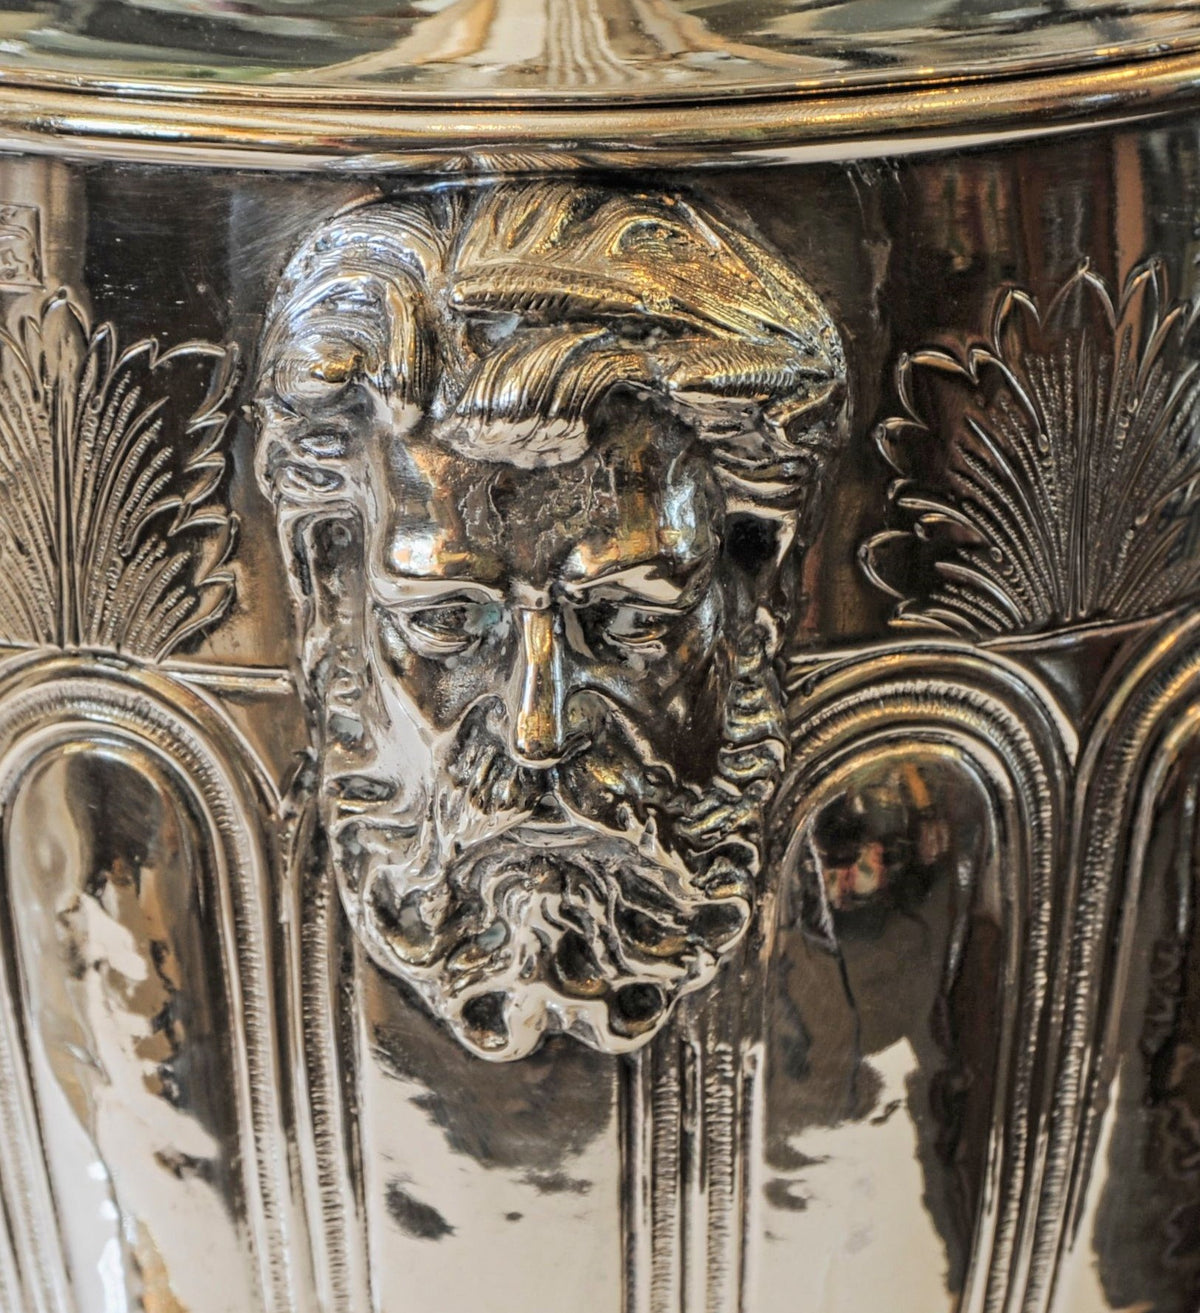 Pair of Magnificent English Silver Lidded Trophy Cups